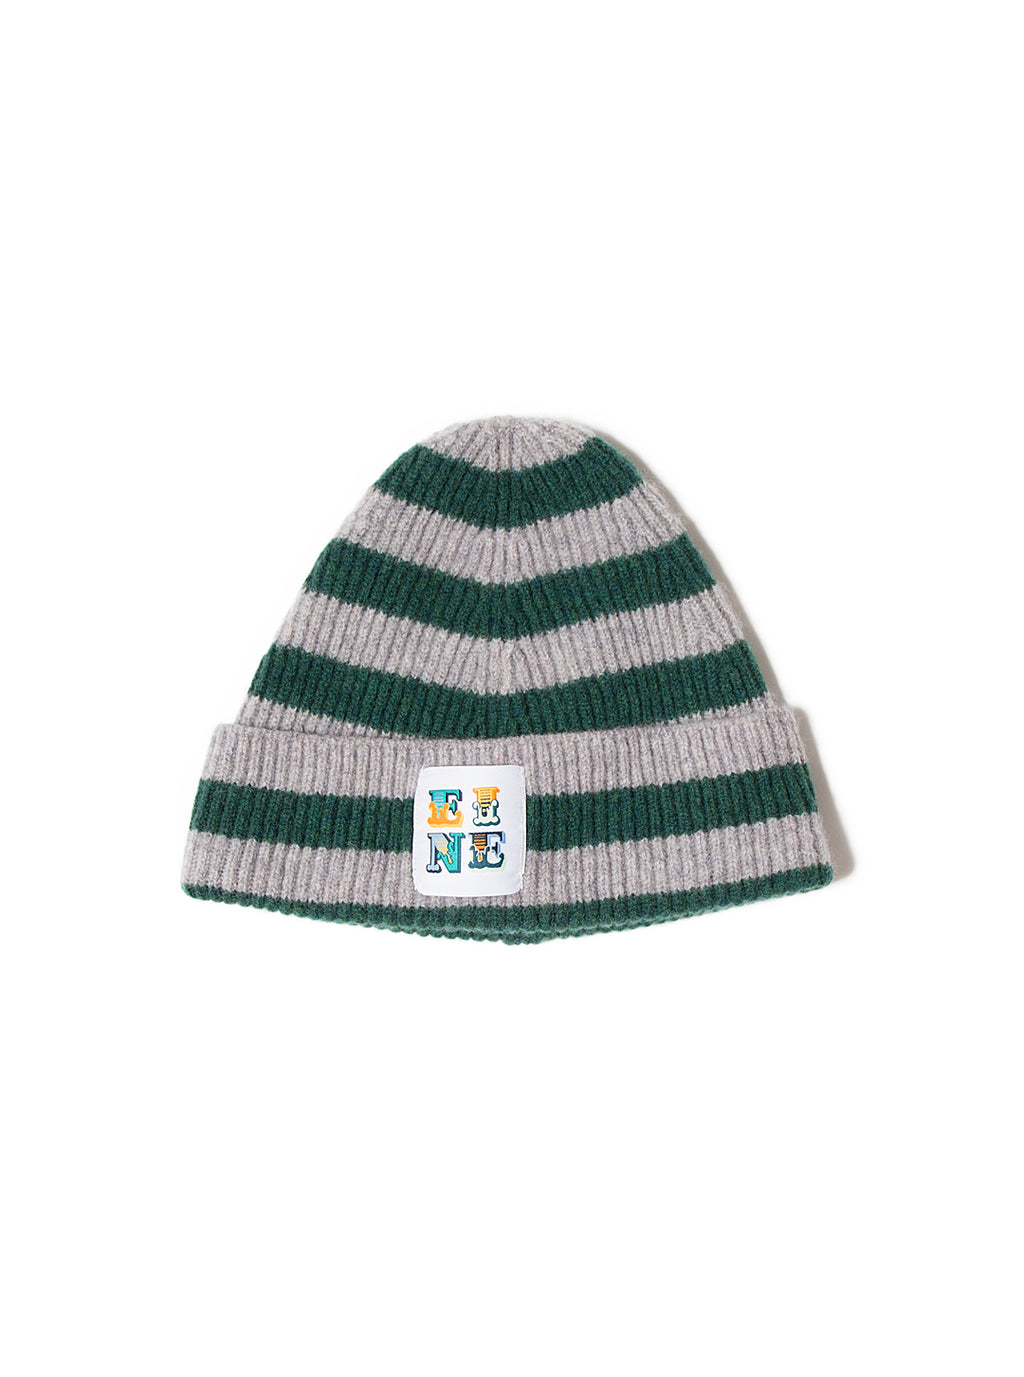 EINE Stripe Wool Beanie - Grey Green Sample